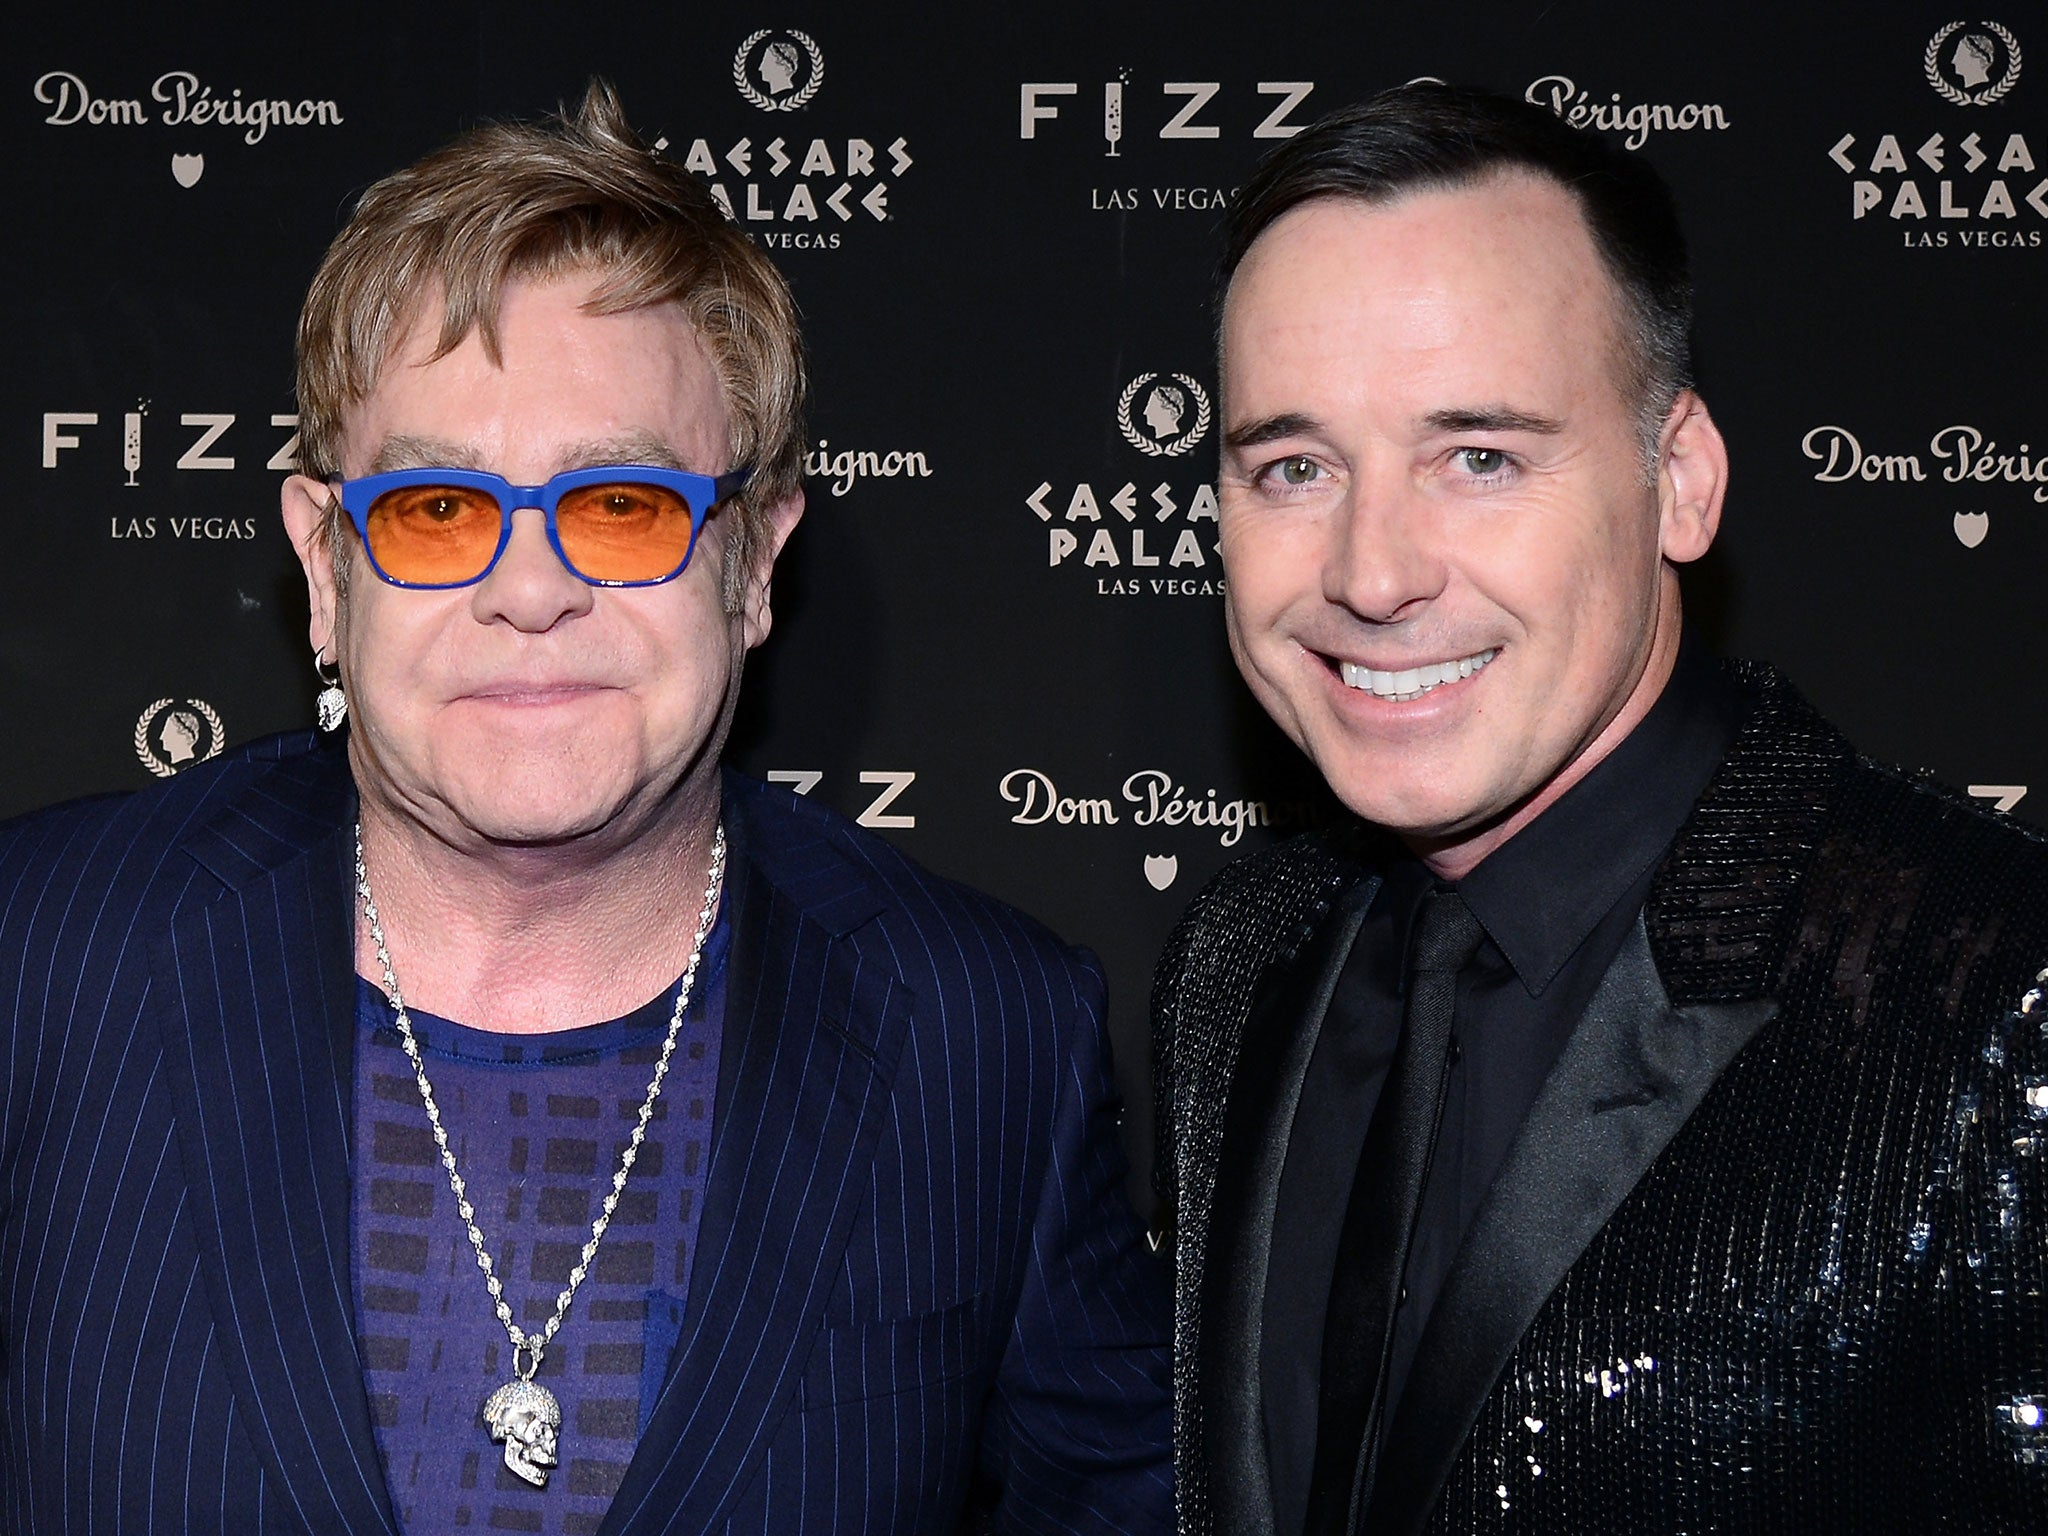 Elton John And David Furnish Wedding: Everyone's Invited As Couple Post  Instagram Photos Throughout Big Day  The Independent